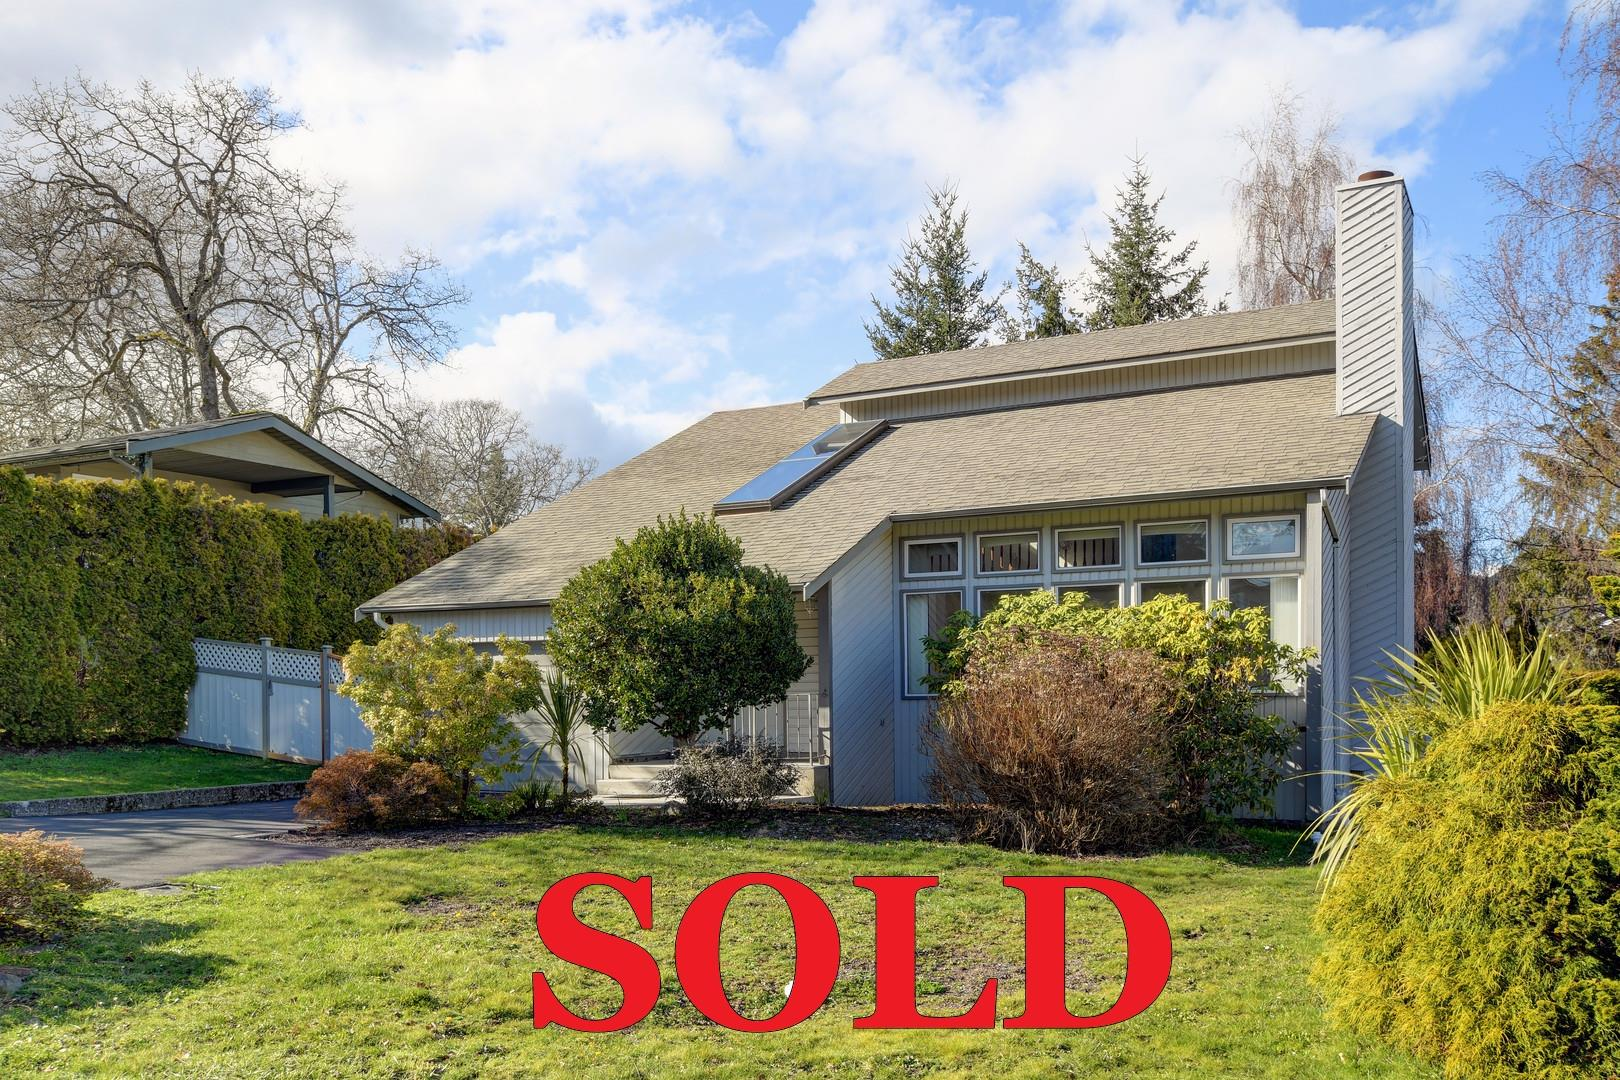 Sold by David Stevens, Thelma Place, Victoria, BC